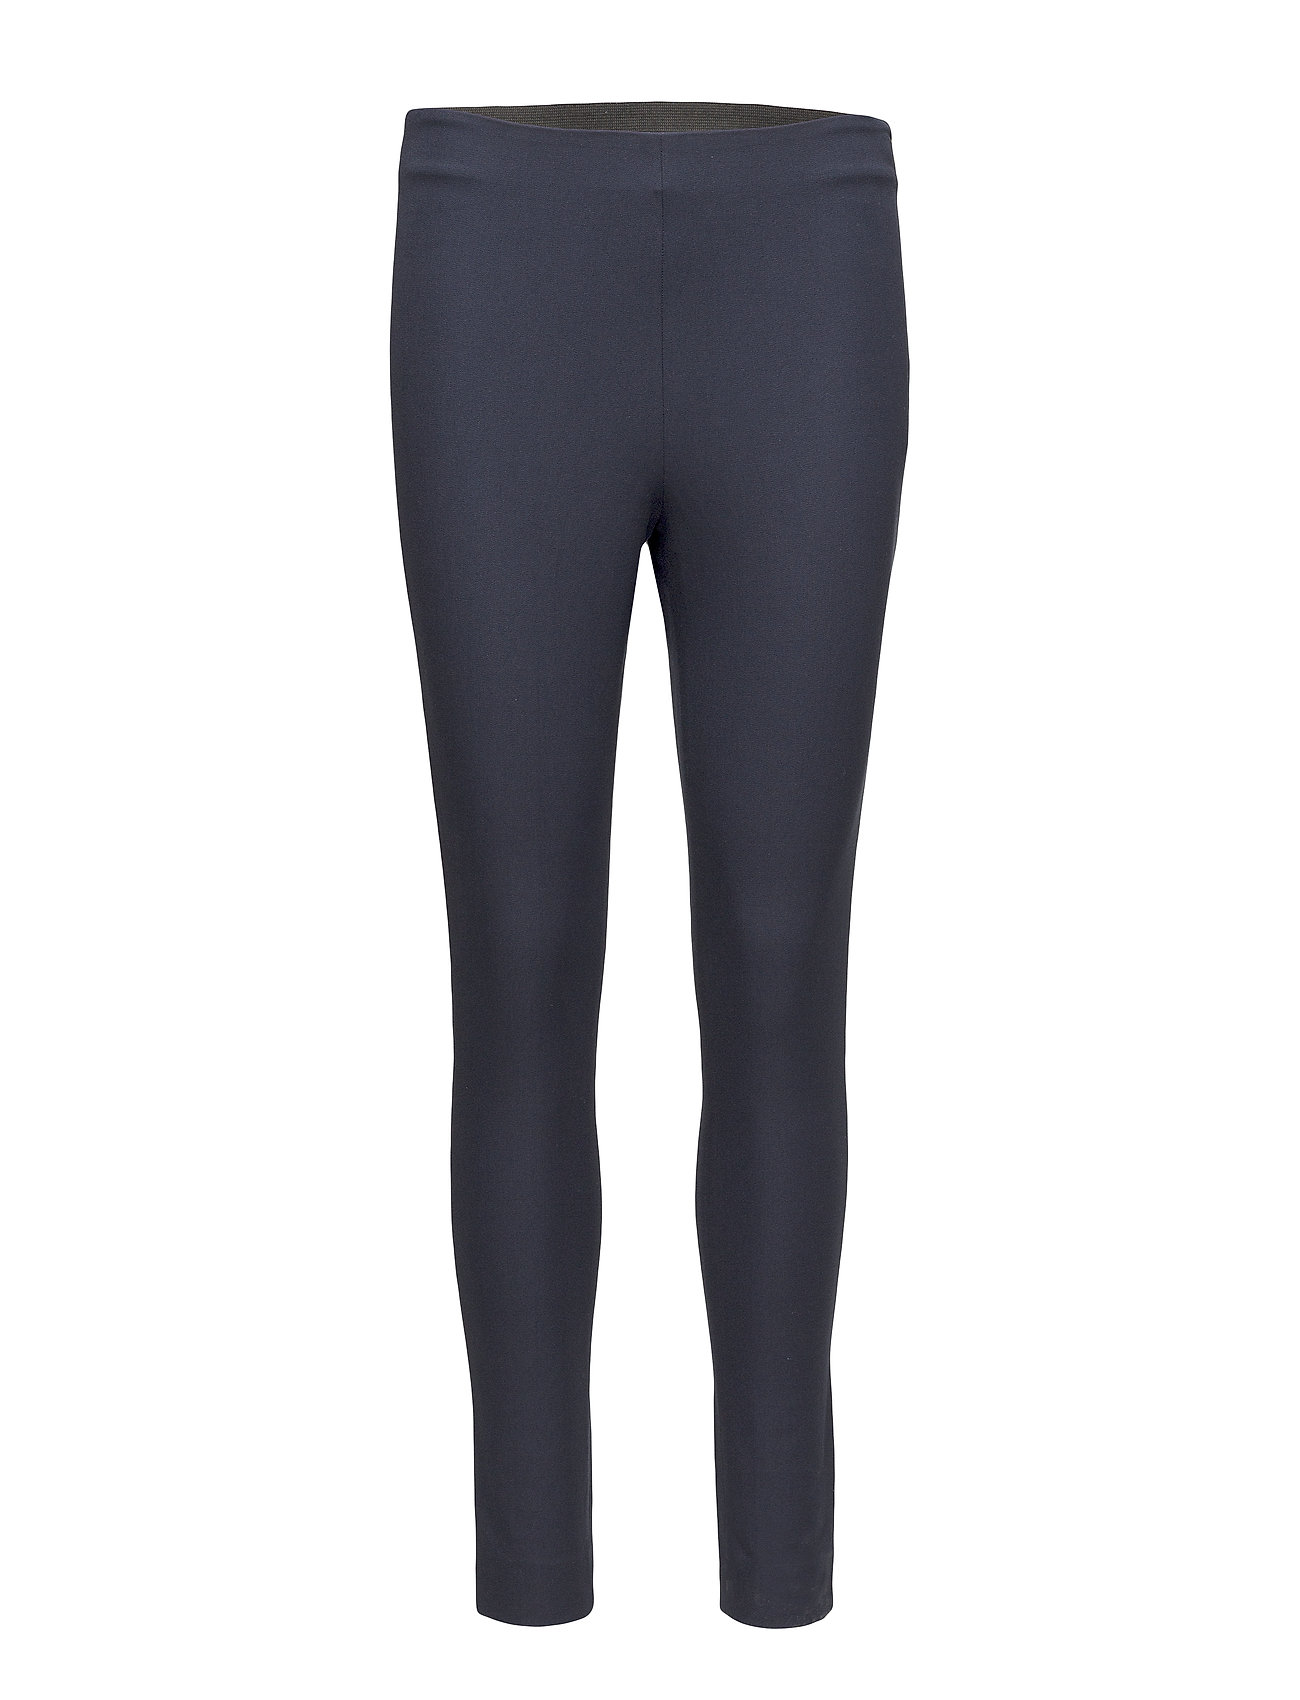 French Connection STREET TWILL SKINNY TROUSER - NOCTURNAL